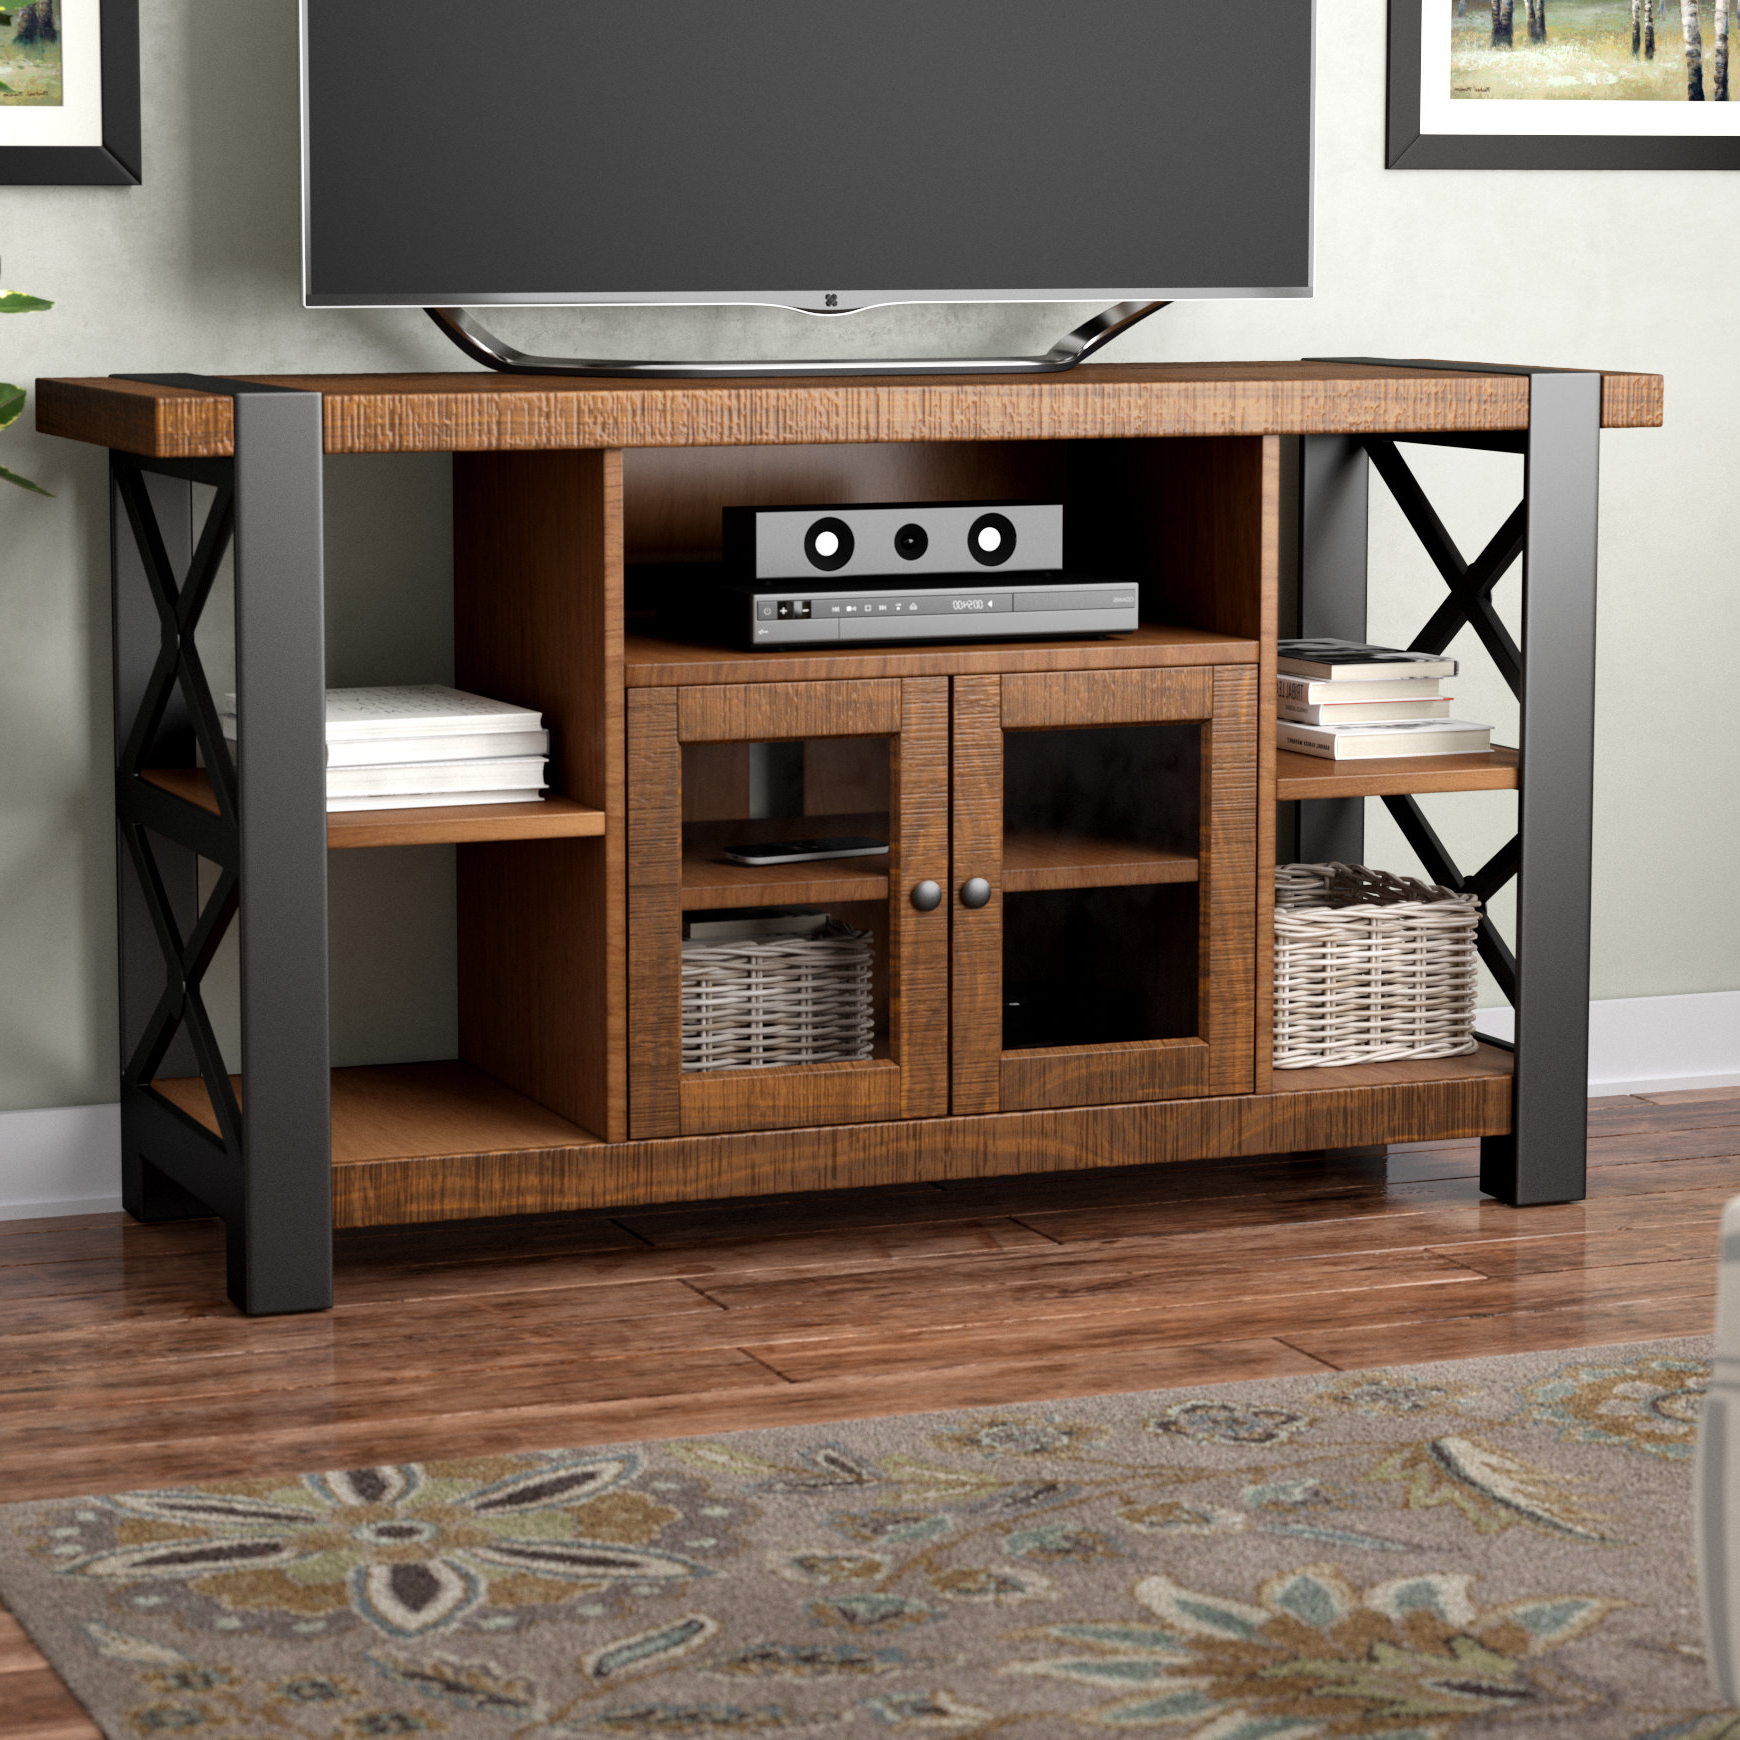 "Red Barrel Studio Monmouth Tv Stand For Tvs Up To 55"" & Reviews With Regard To Valencia 70 Inch Tv Stands (View 5 of 20)"